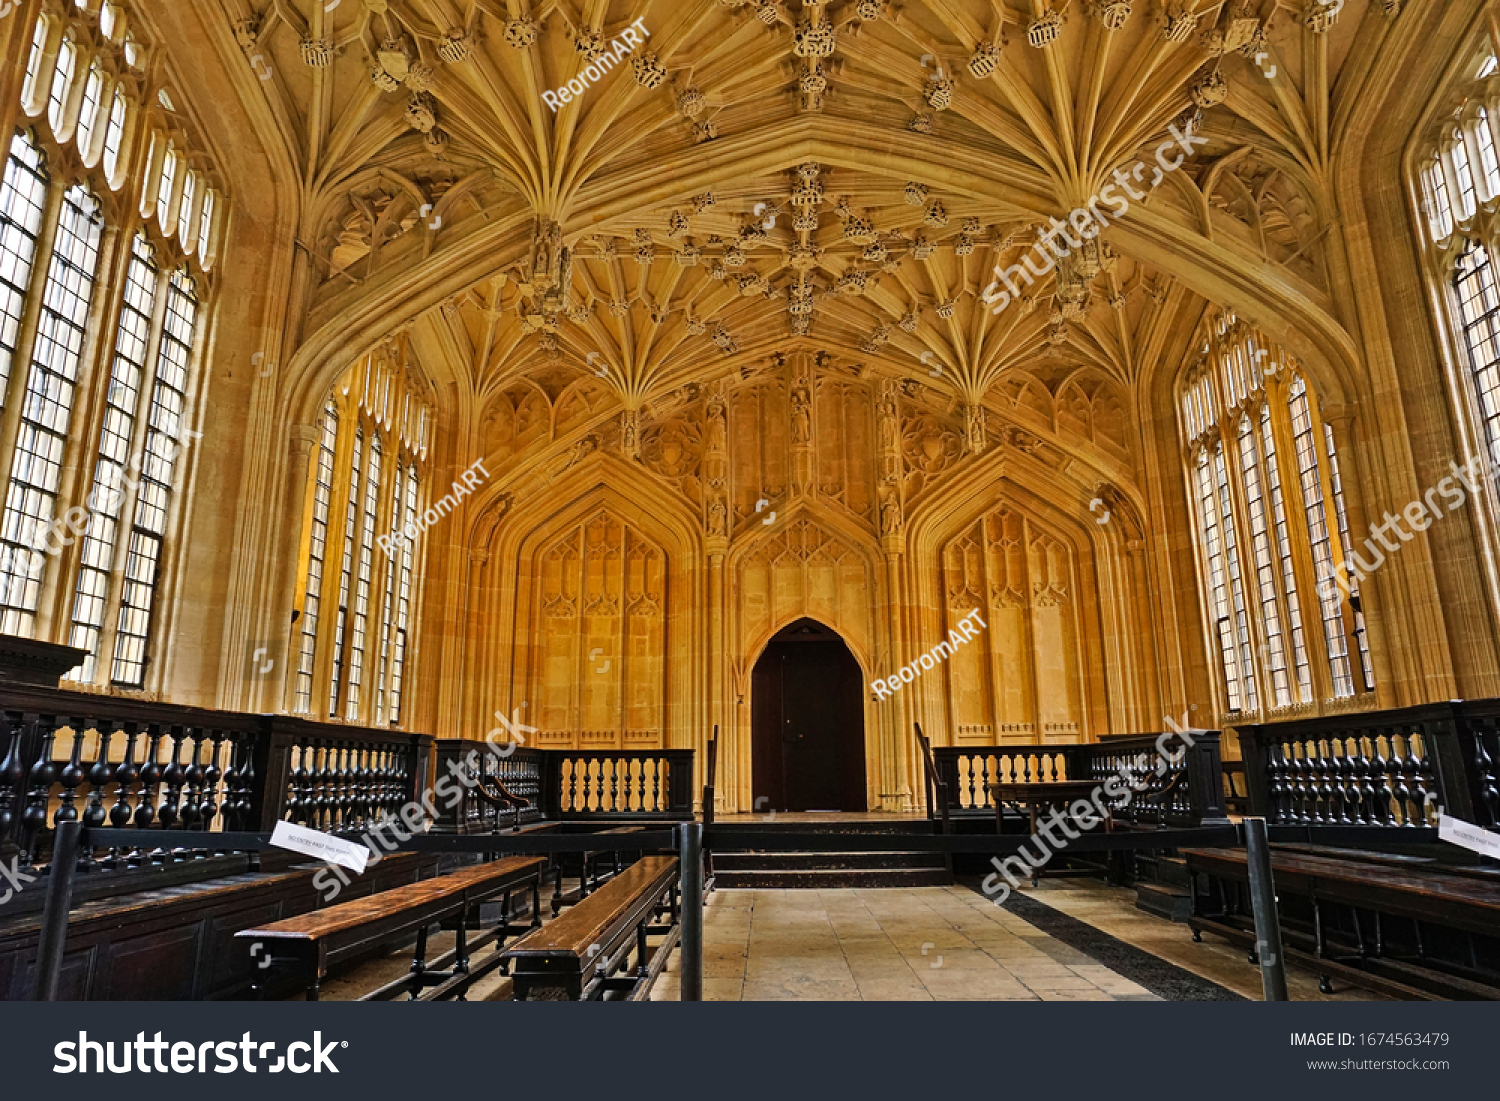 Divinity School, University of Oxford, Oxfordshire, England. Photo was taken on 01/08/2020. It is the oldest surviving purpose-built building for university use, specifically for lectures, oral exams